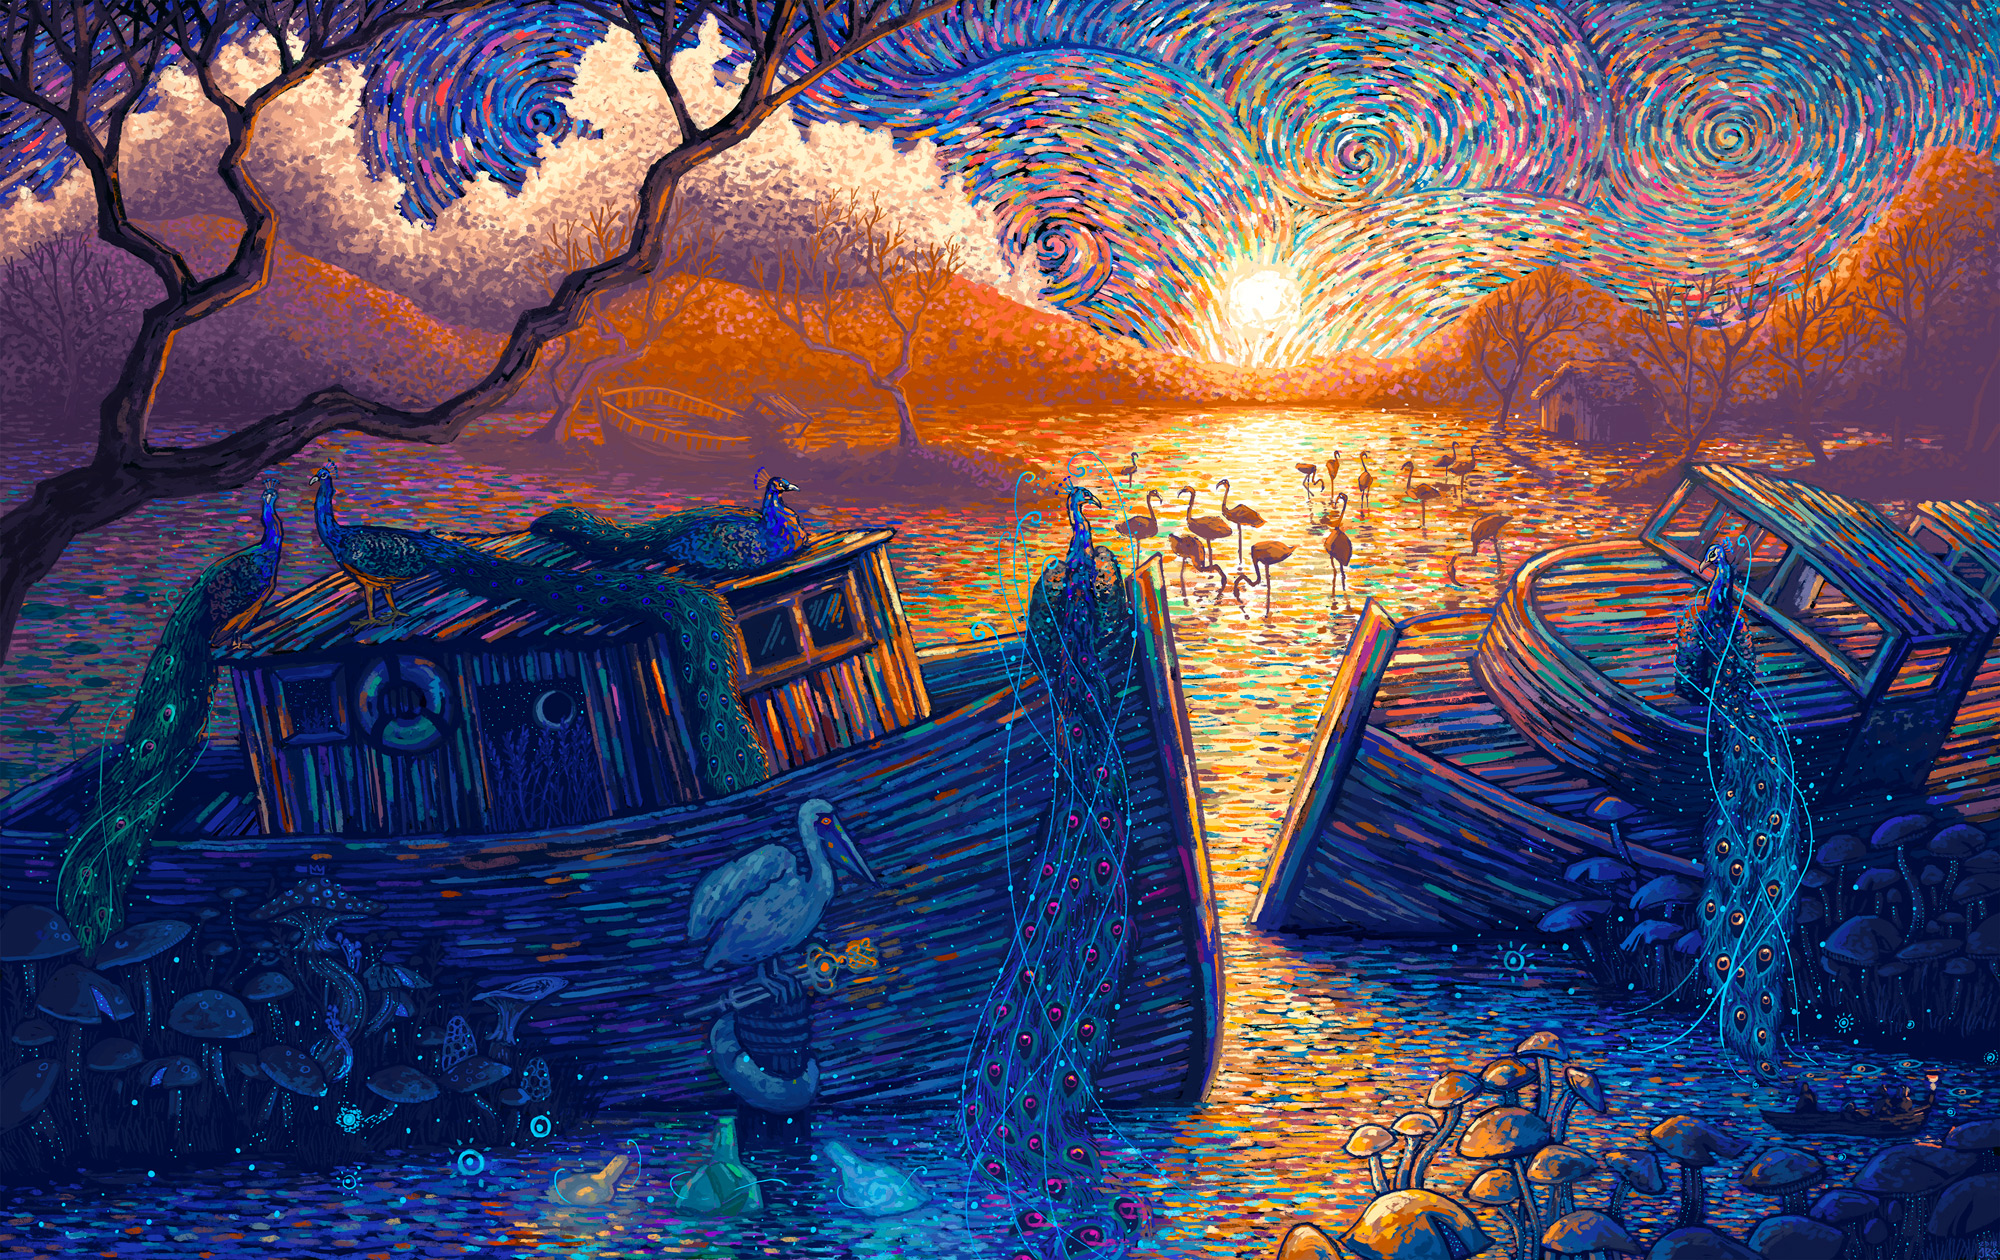 Fantastical Worlds Created with Dappled Brush Strokes by Illustrator James R. Eads